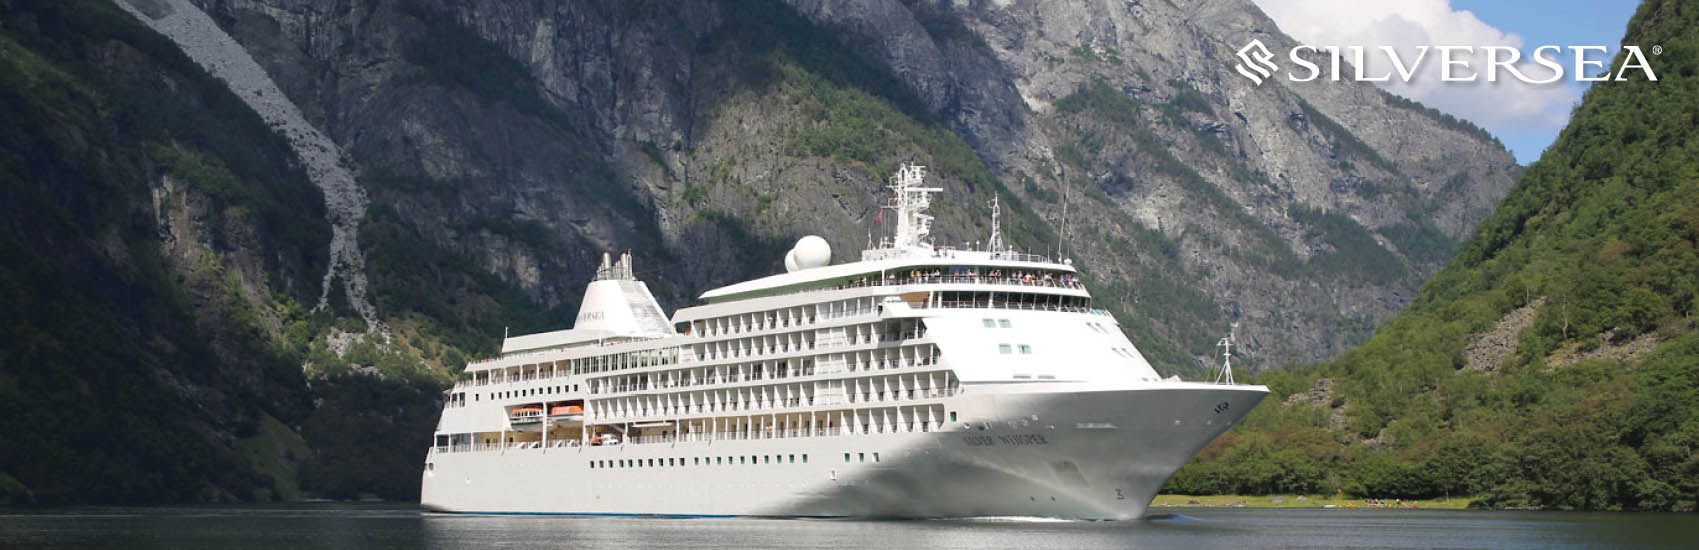 Silversea Private Sale 3